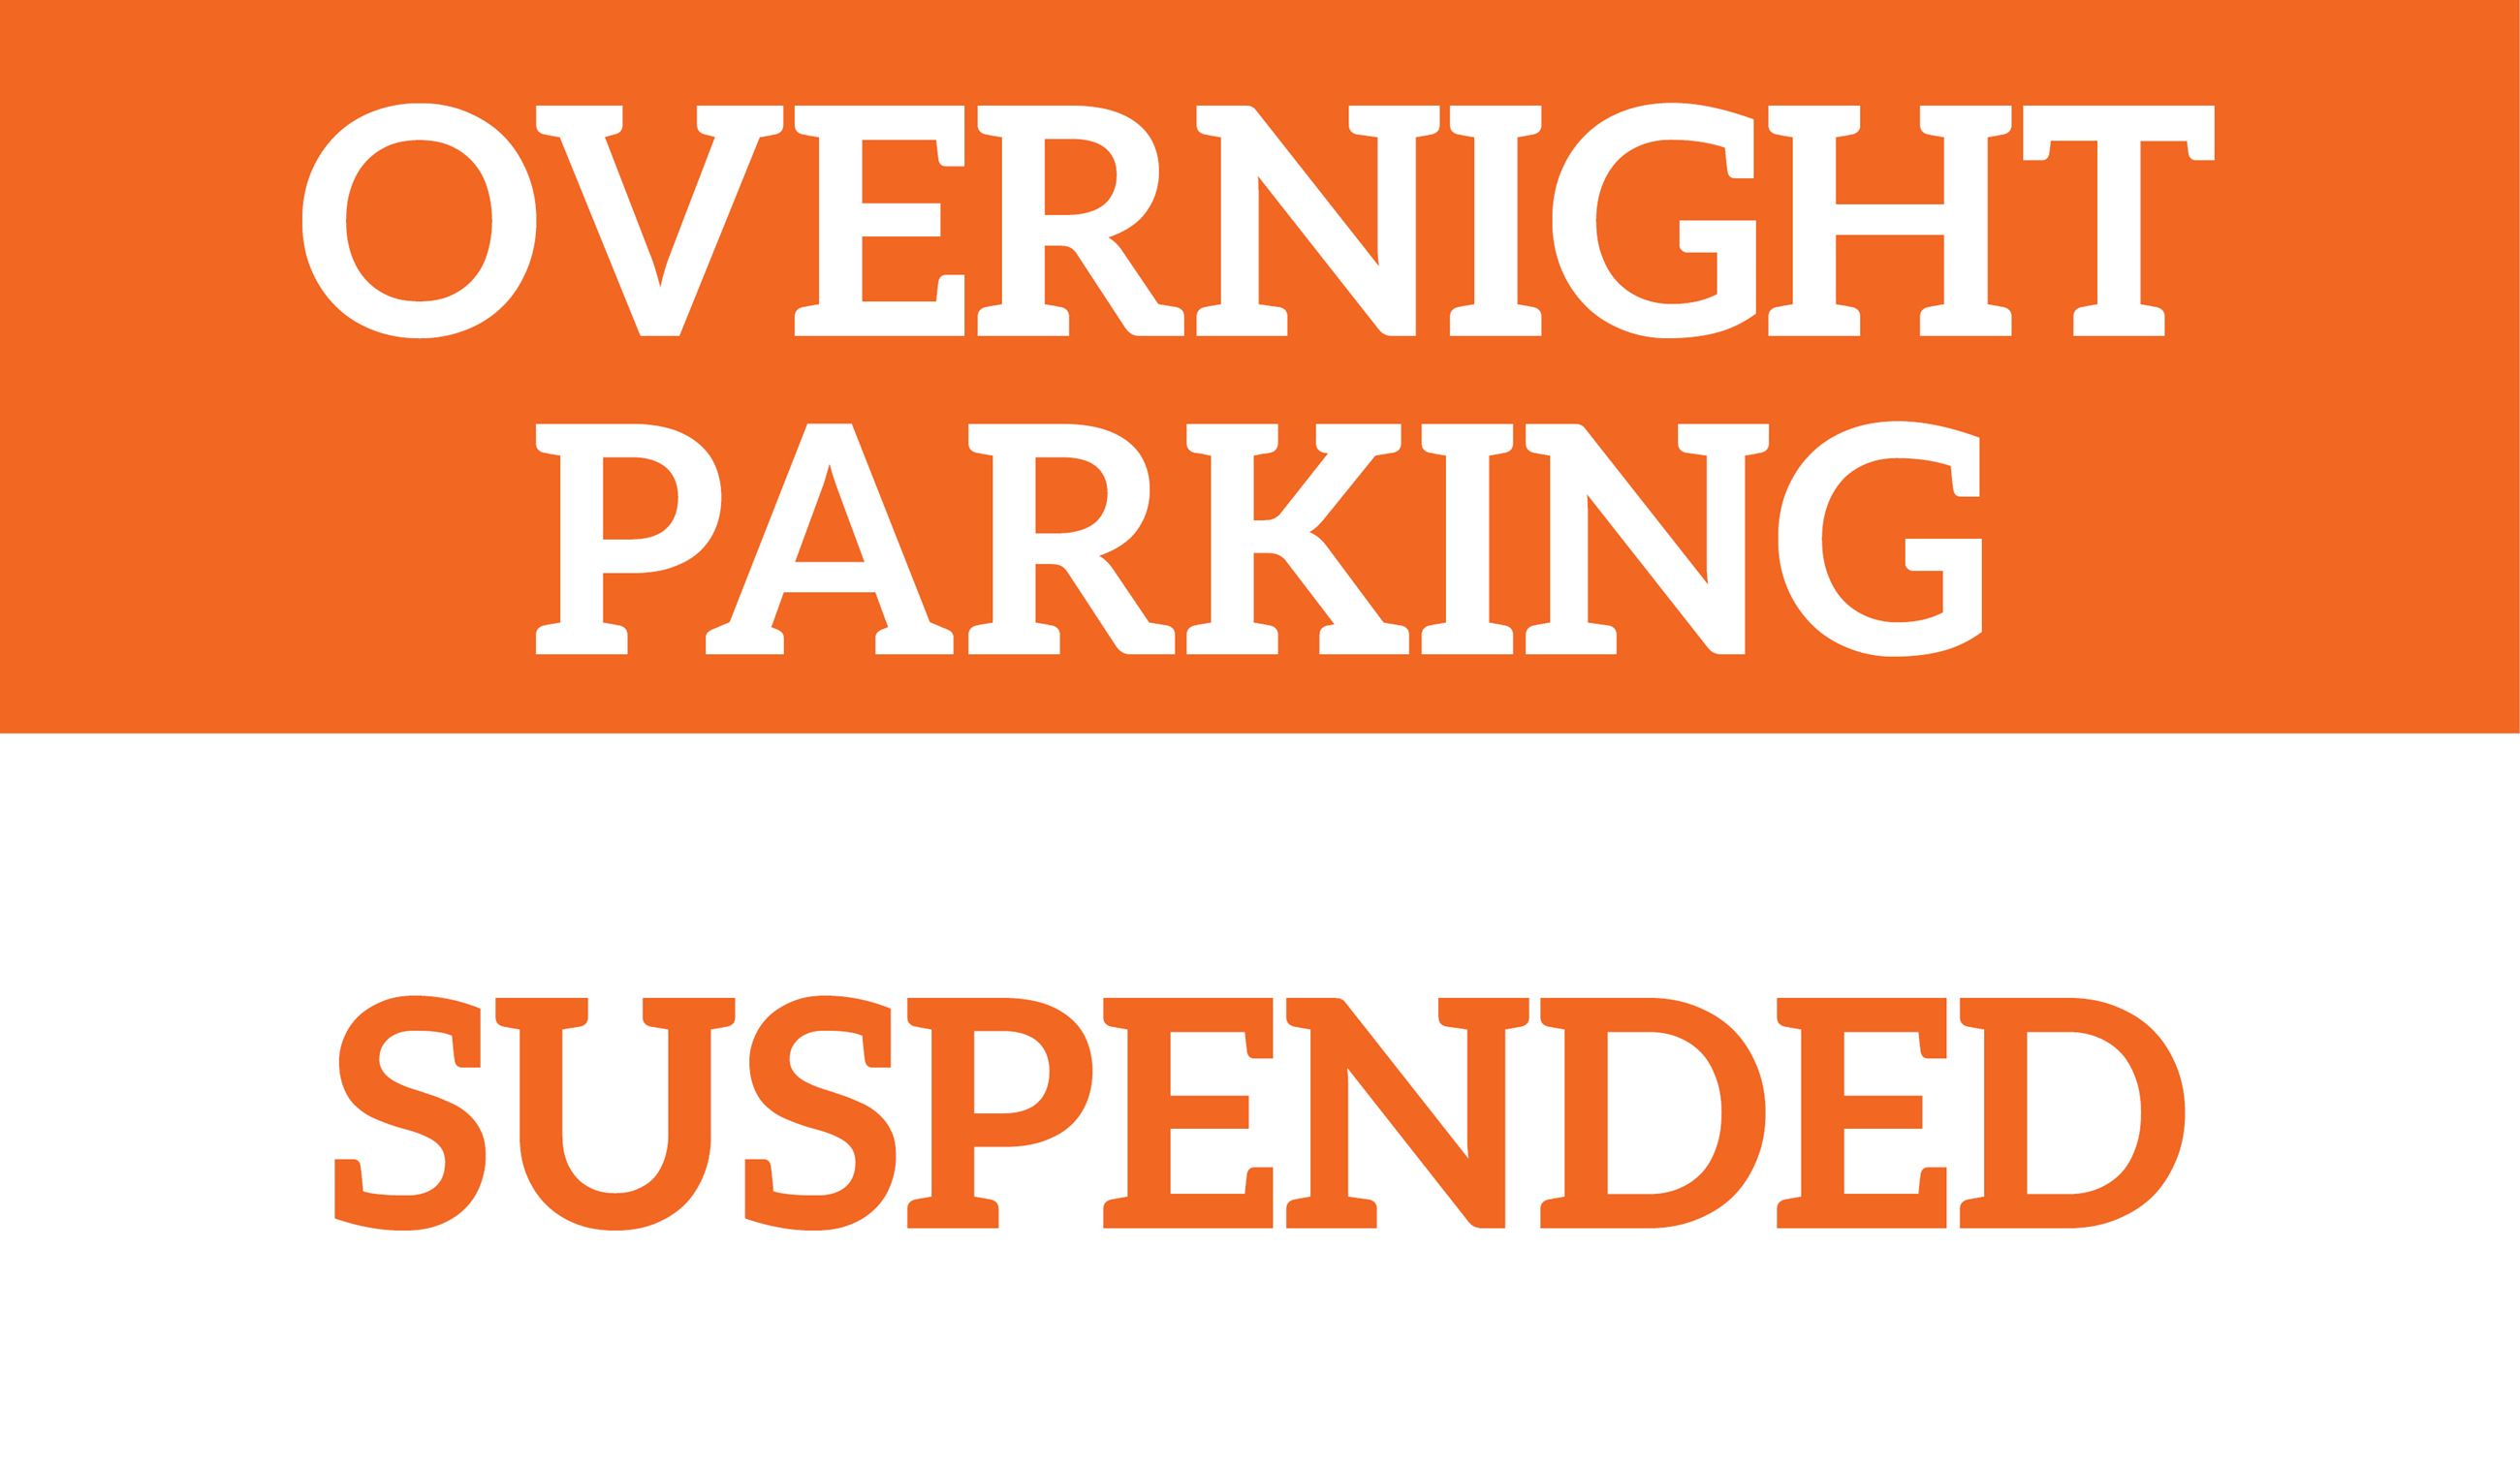 Overnight Parking Suspended